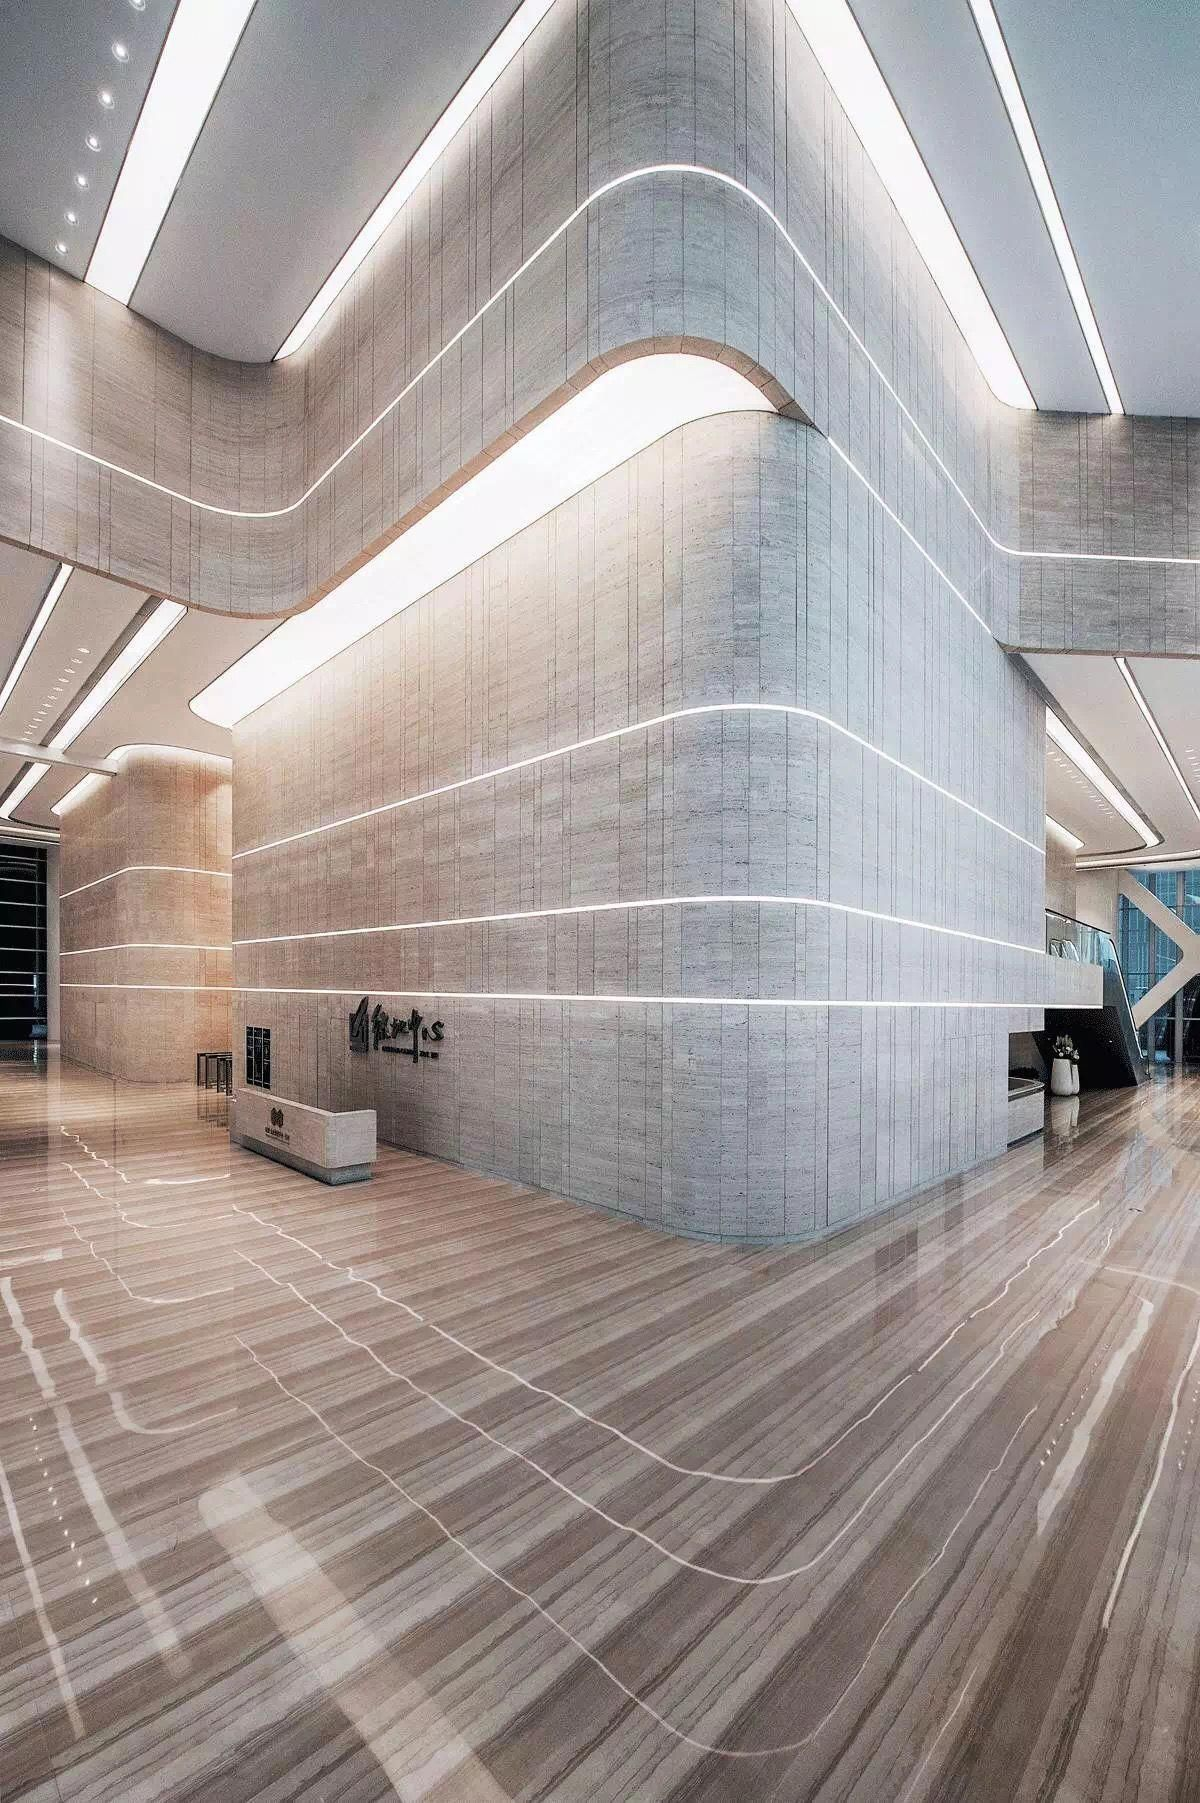 Room Lighting Design Software: The Linear Light On The Wall Is Reflecting On The Floor